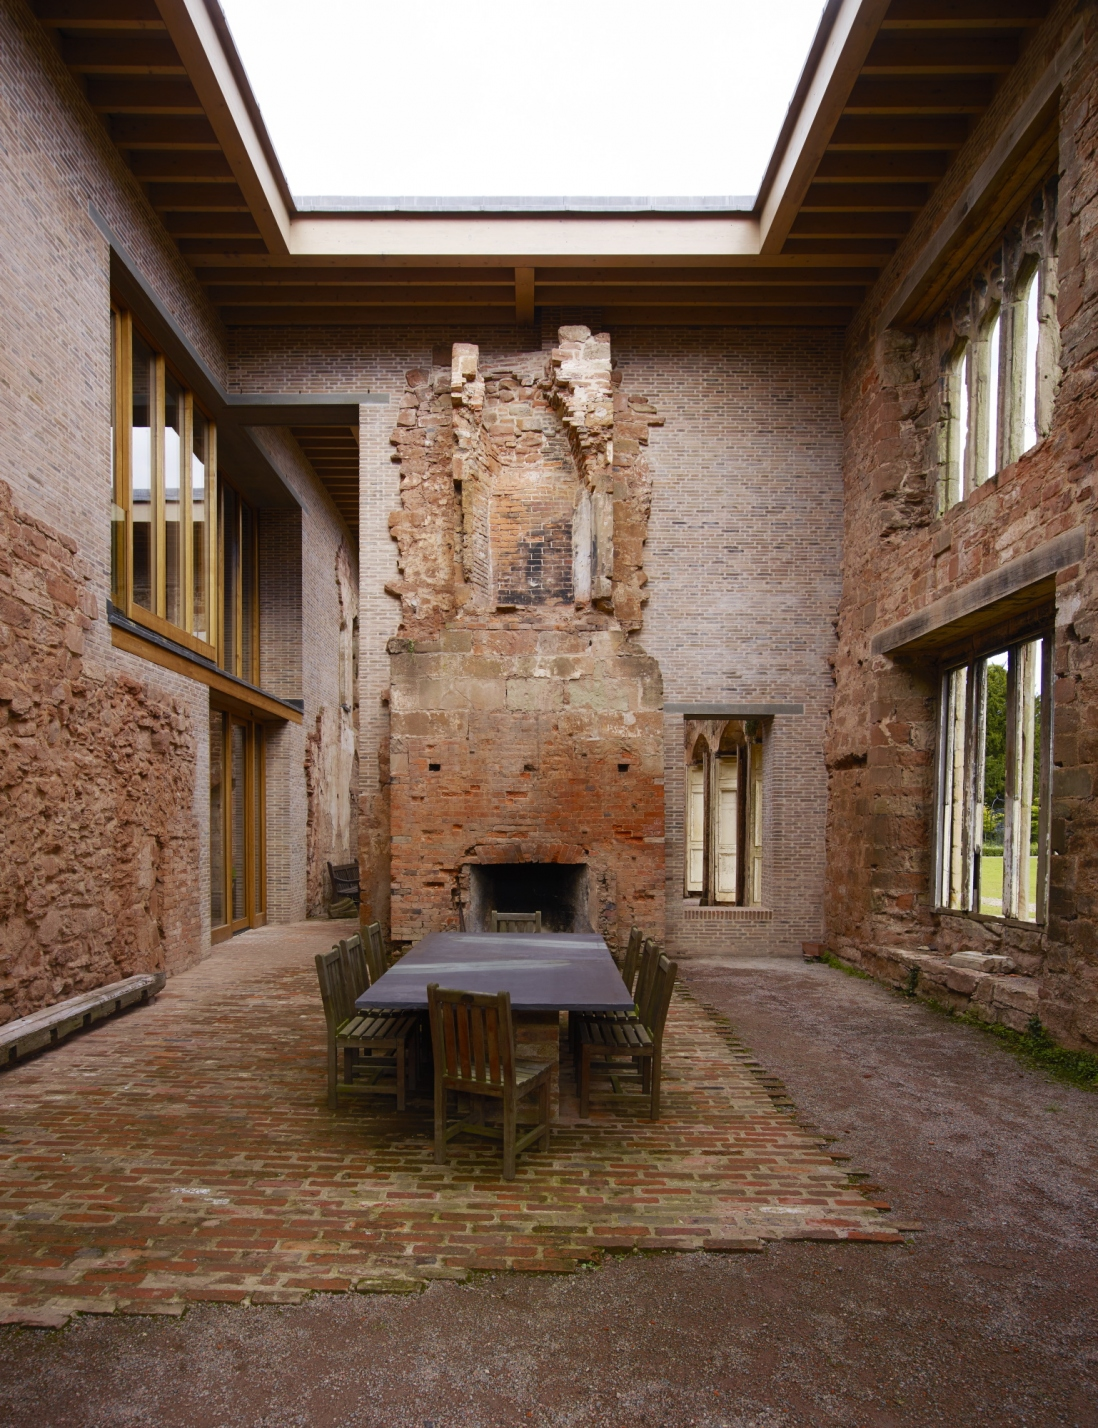 Dining room of renovated Castle in the United Kingdom